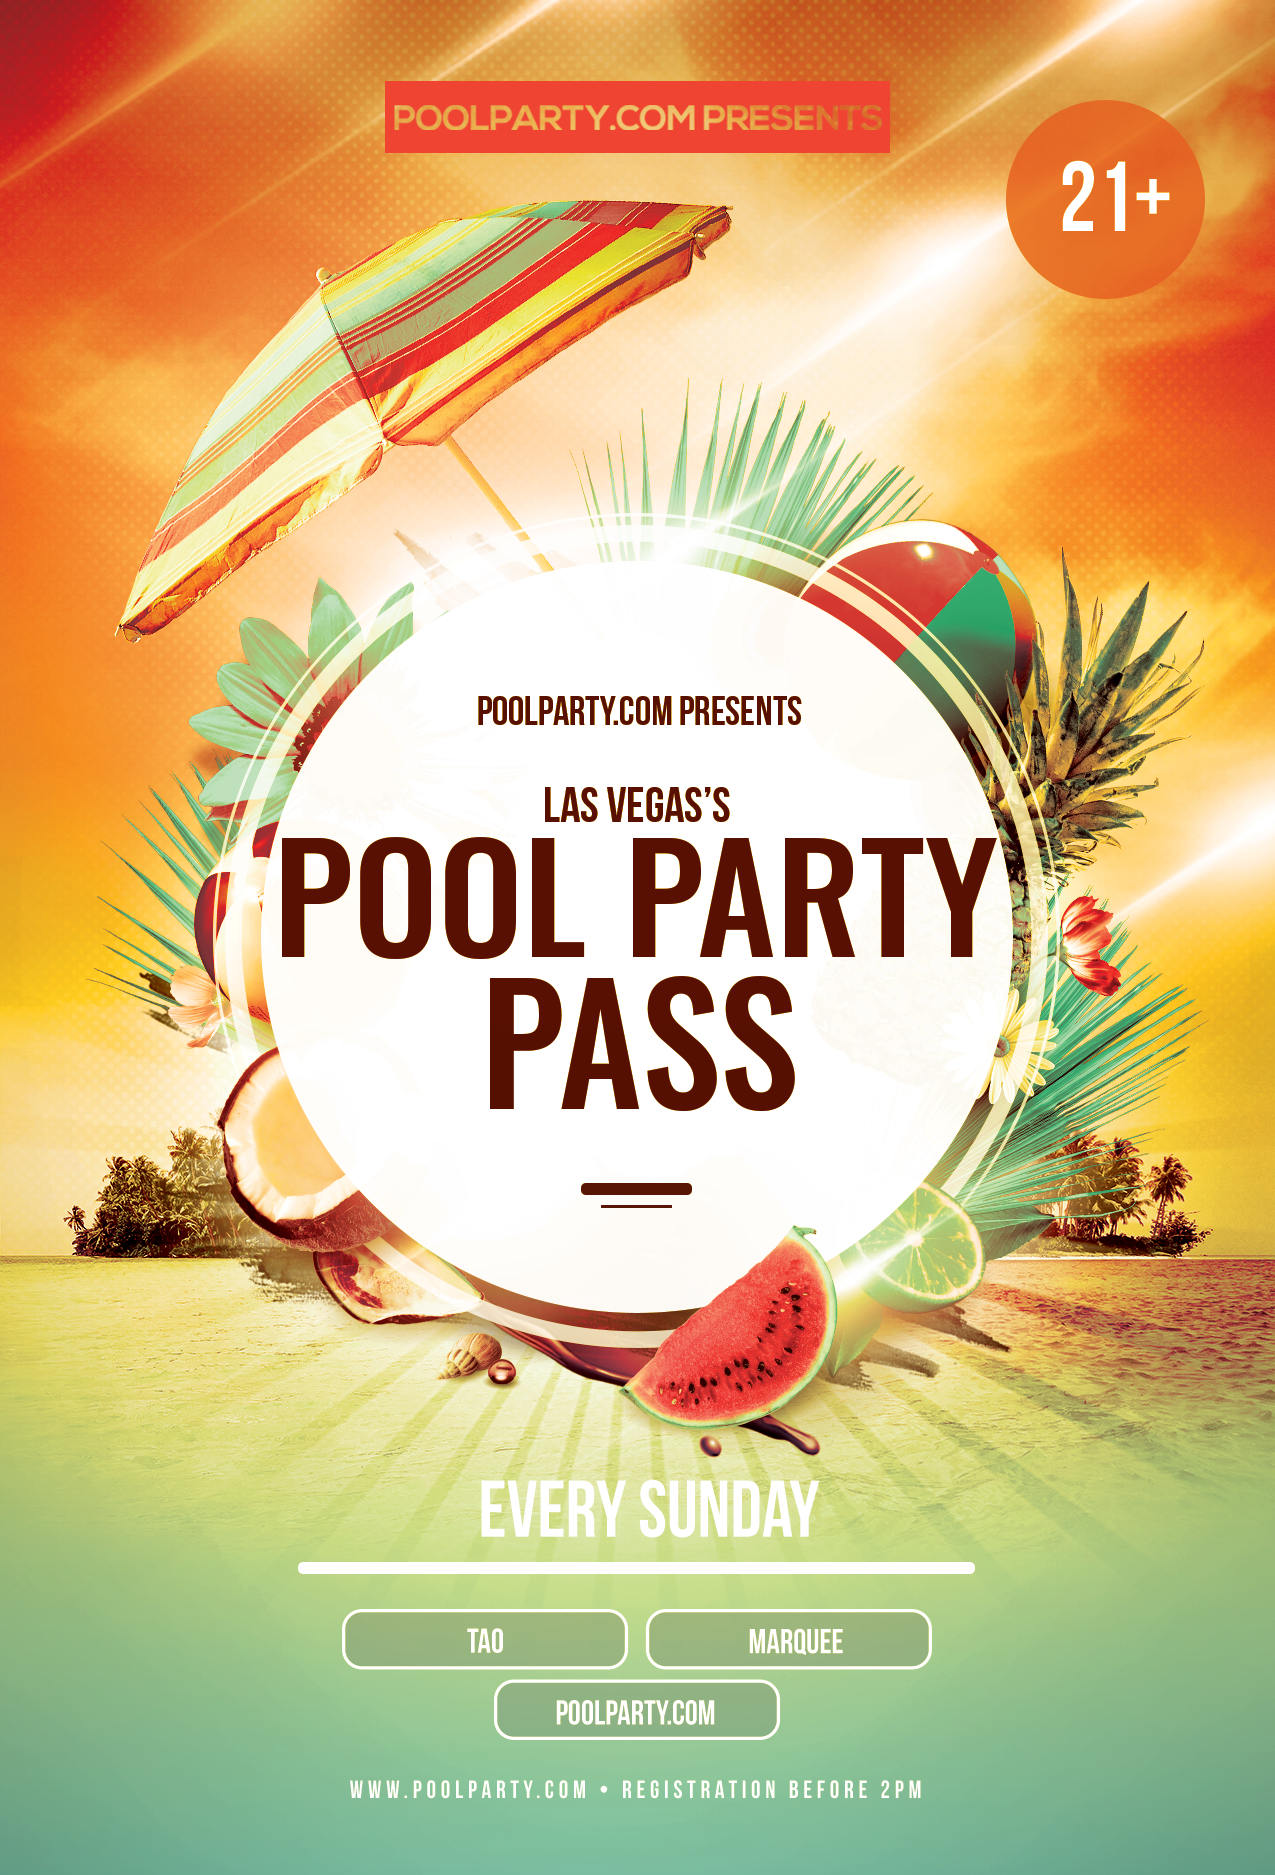 Sunday's Pool Party Pass (July 28th)*NOW INCLUDING FREE ADMISSION TO TAO NIGHTCLUB*